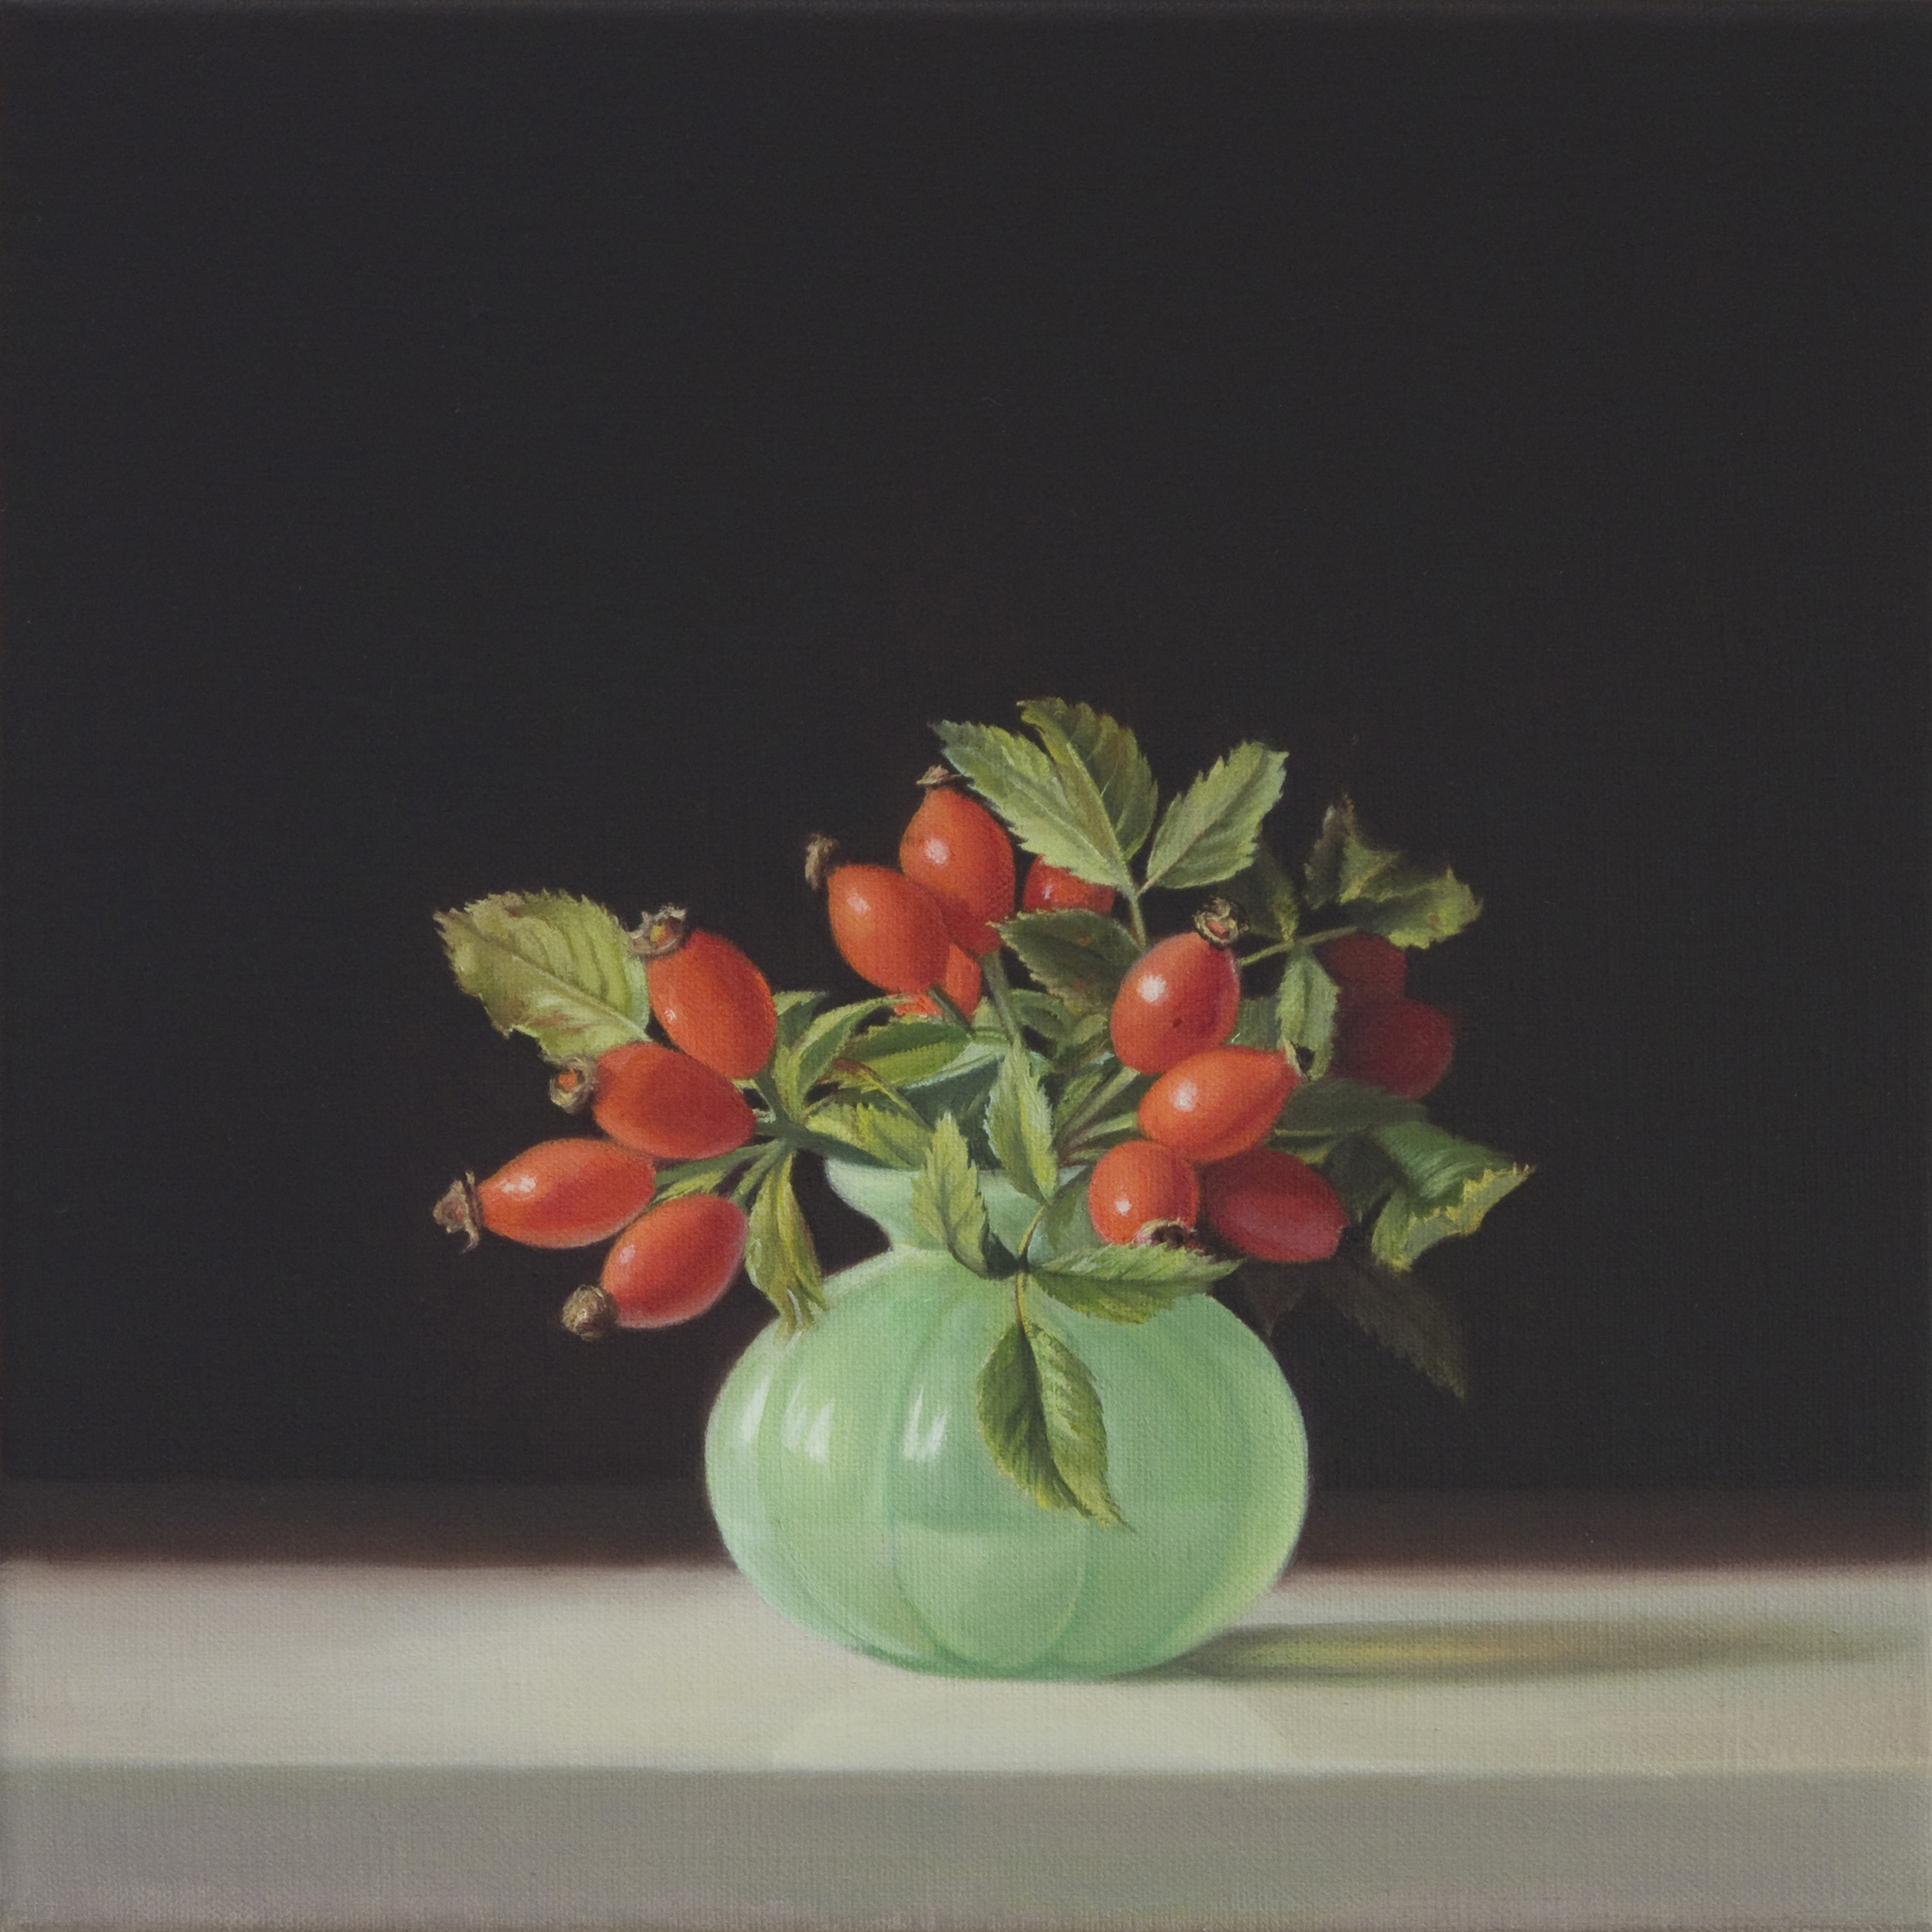 Rose buds, Oil on Linen, 30x30cm. Private Collection